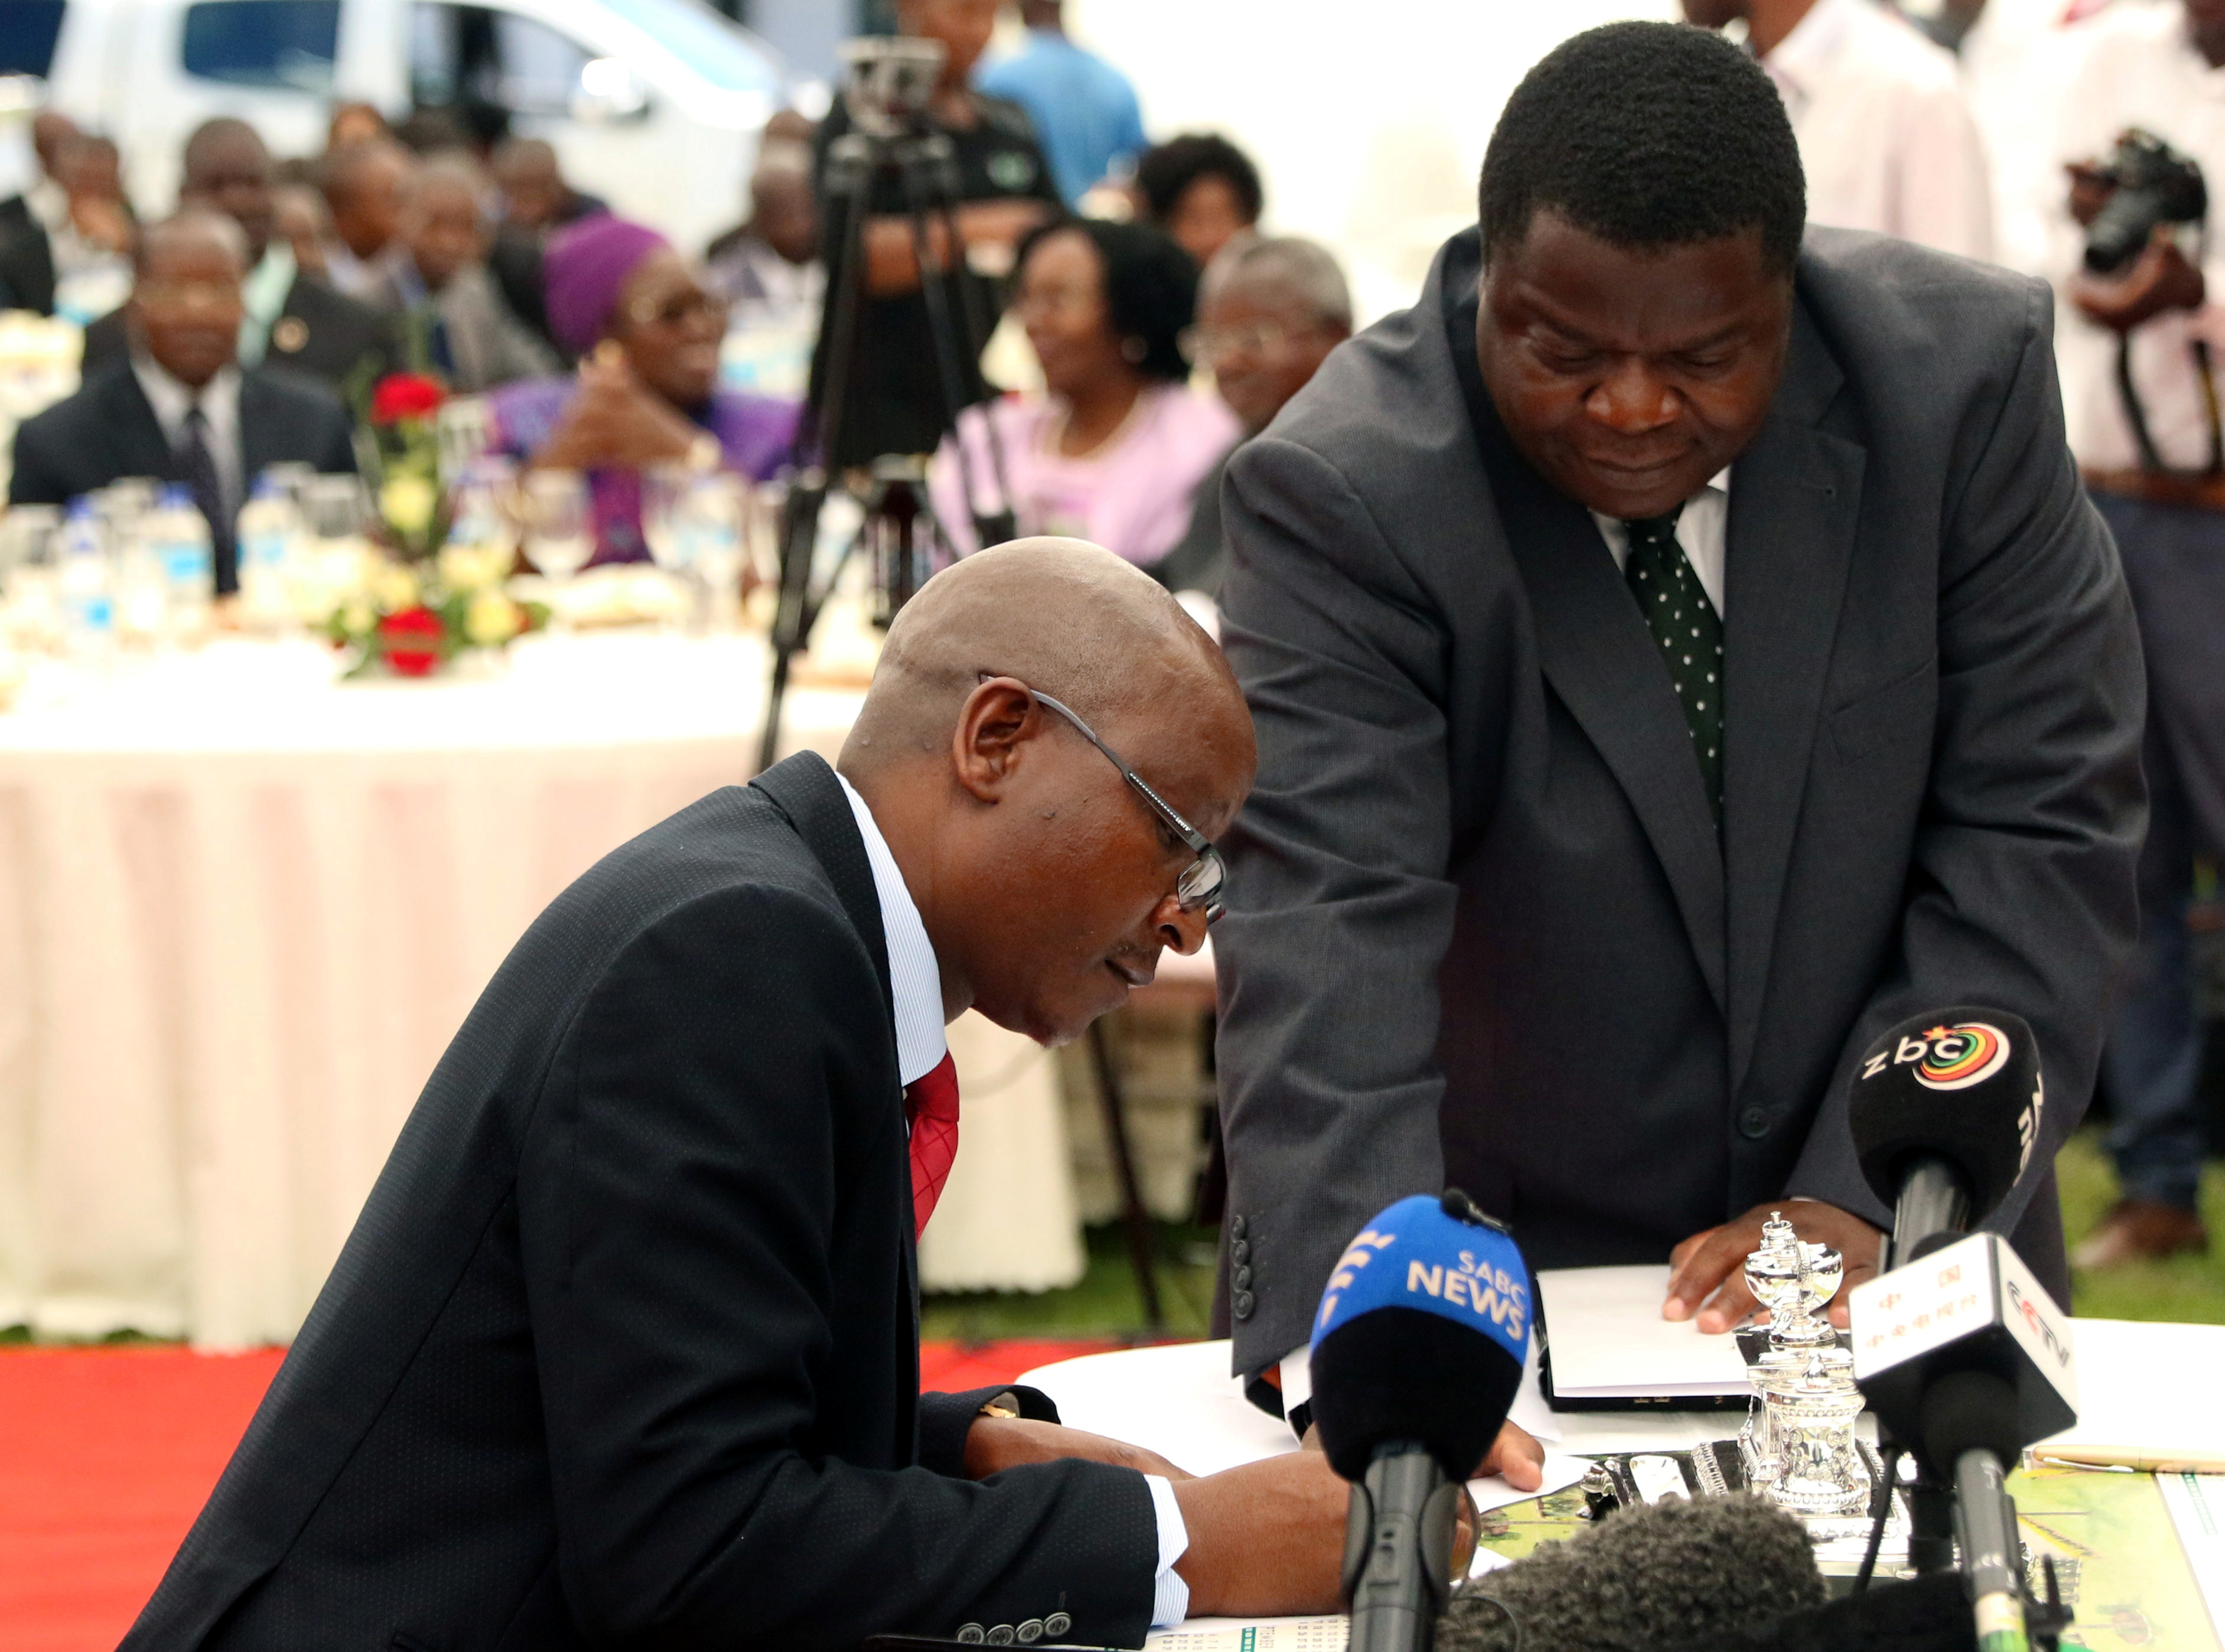 Zimbabwean Minister of Justice Ziyambi Ziyambi signs the oath of office during the swearing in ceremony at State House in Harare, Zimbabwe, on December 4, 2017.  REUTERS/Philimon Bulawayo